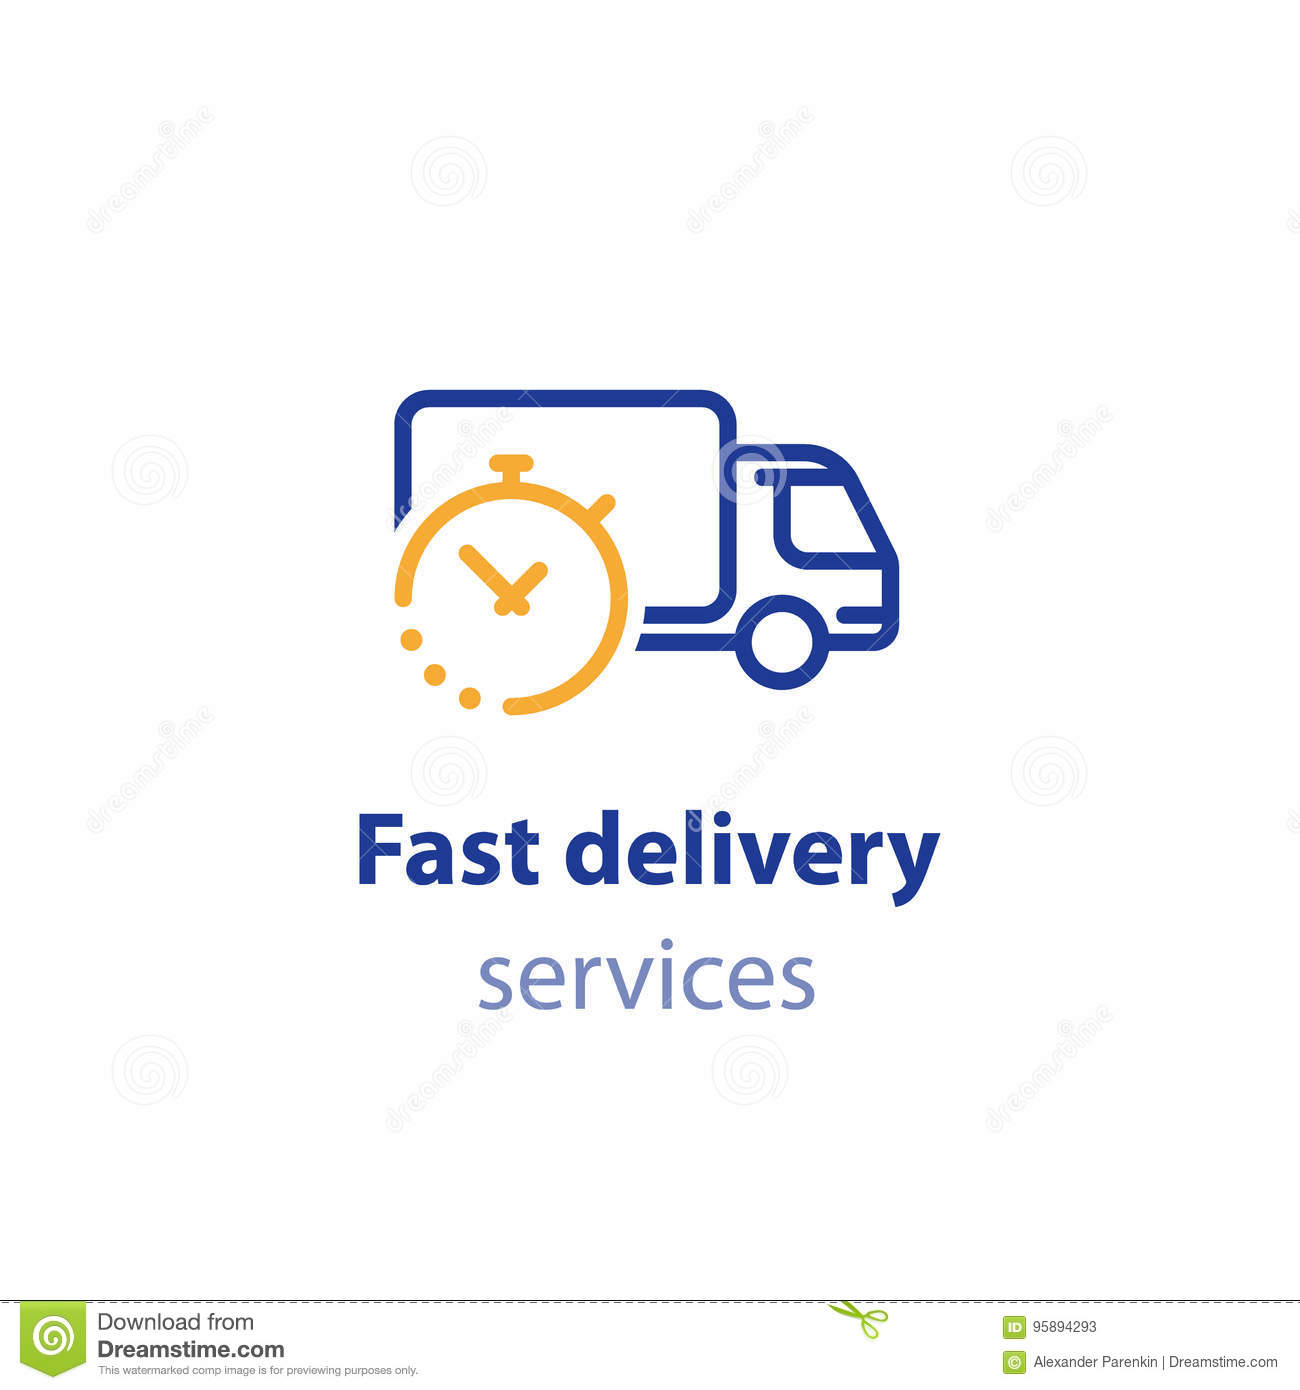 Truck delivery duration, fast relocation services, transportation company logo element, shipping order day, distribution line icon